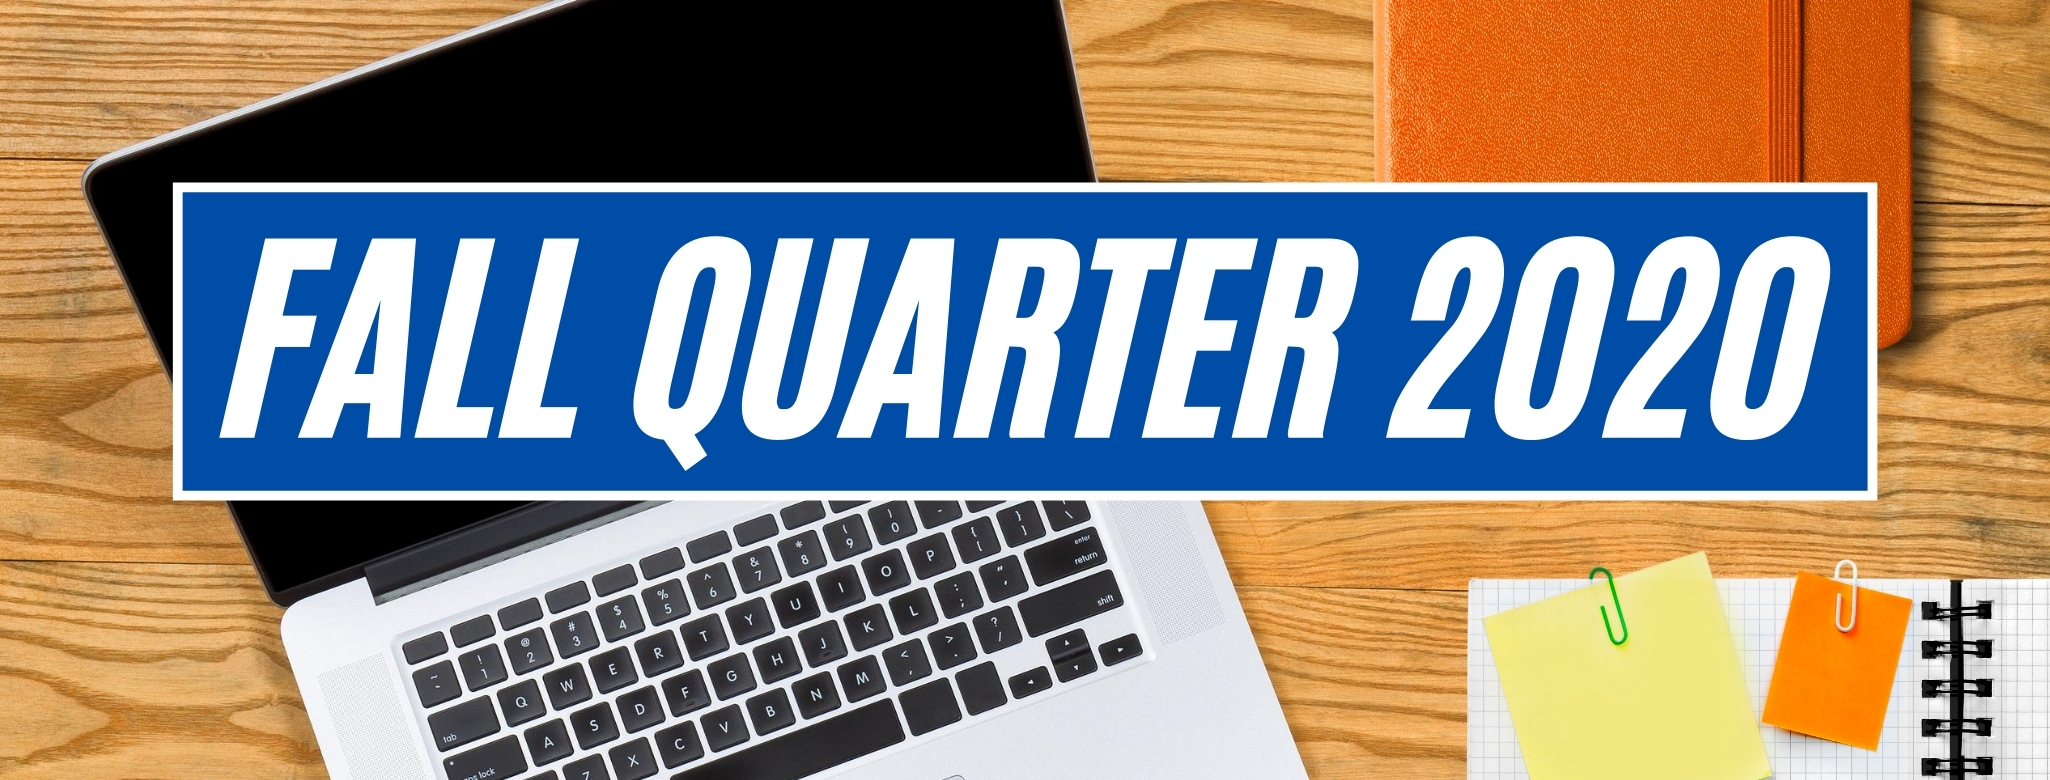 Fall Quarter graphic